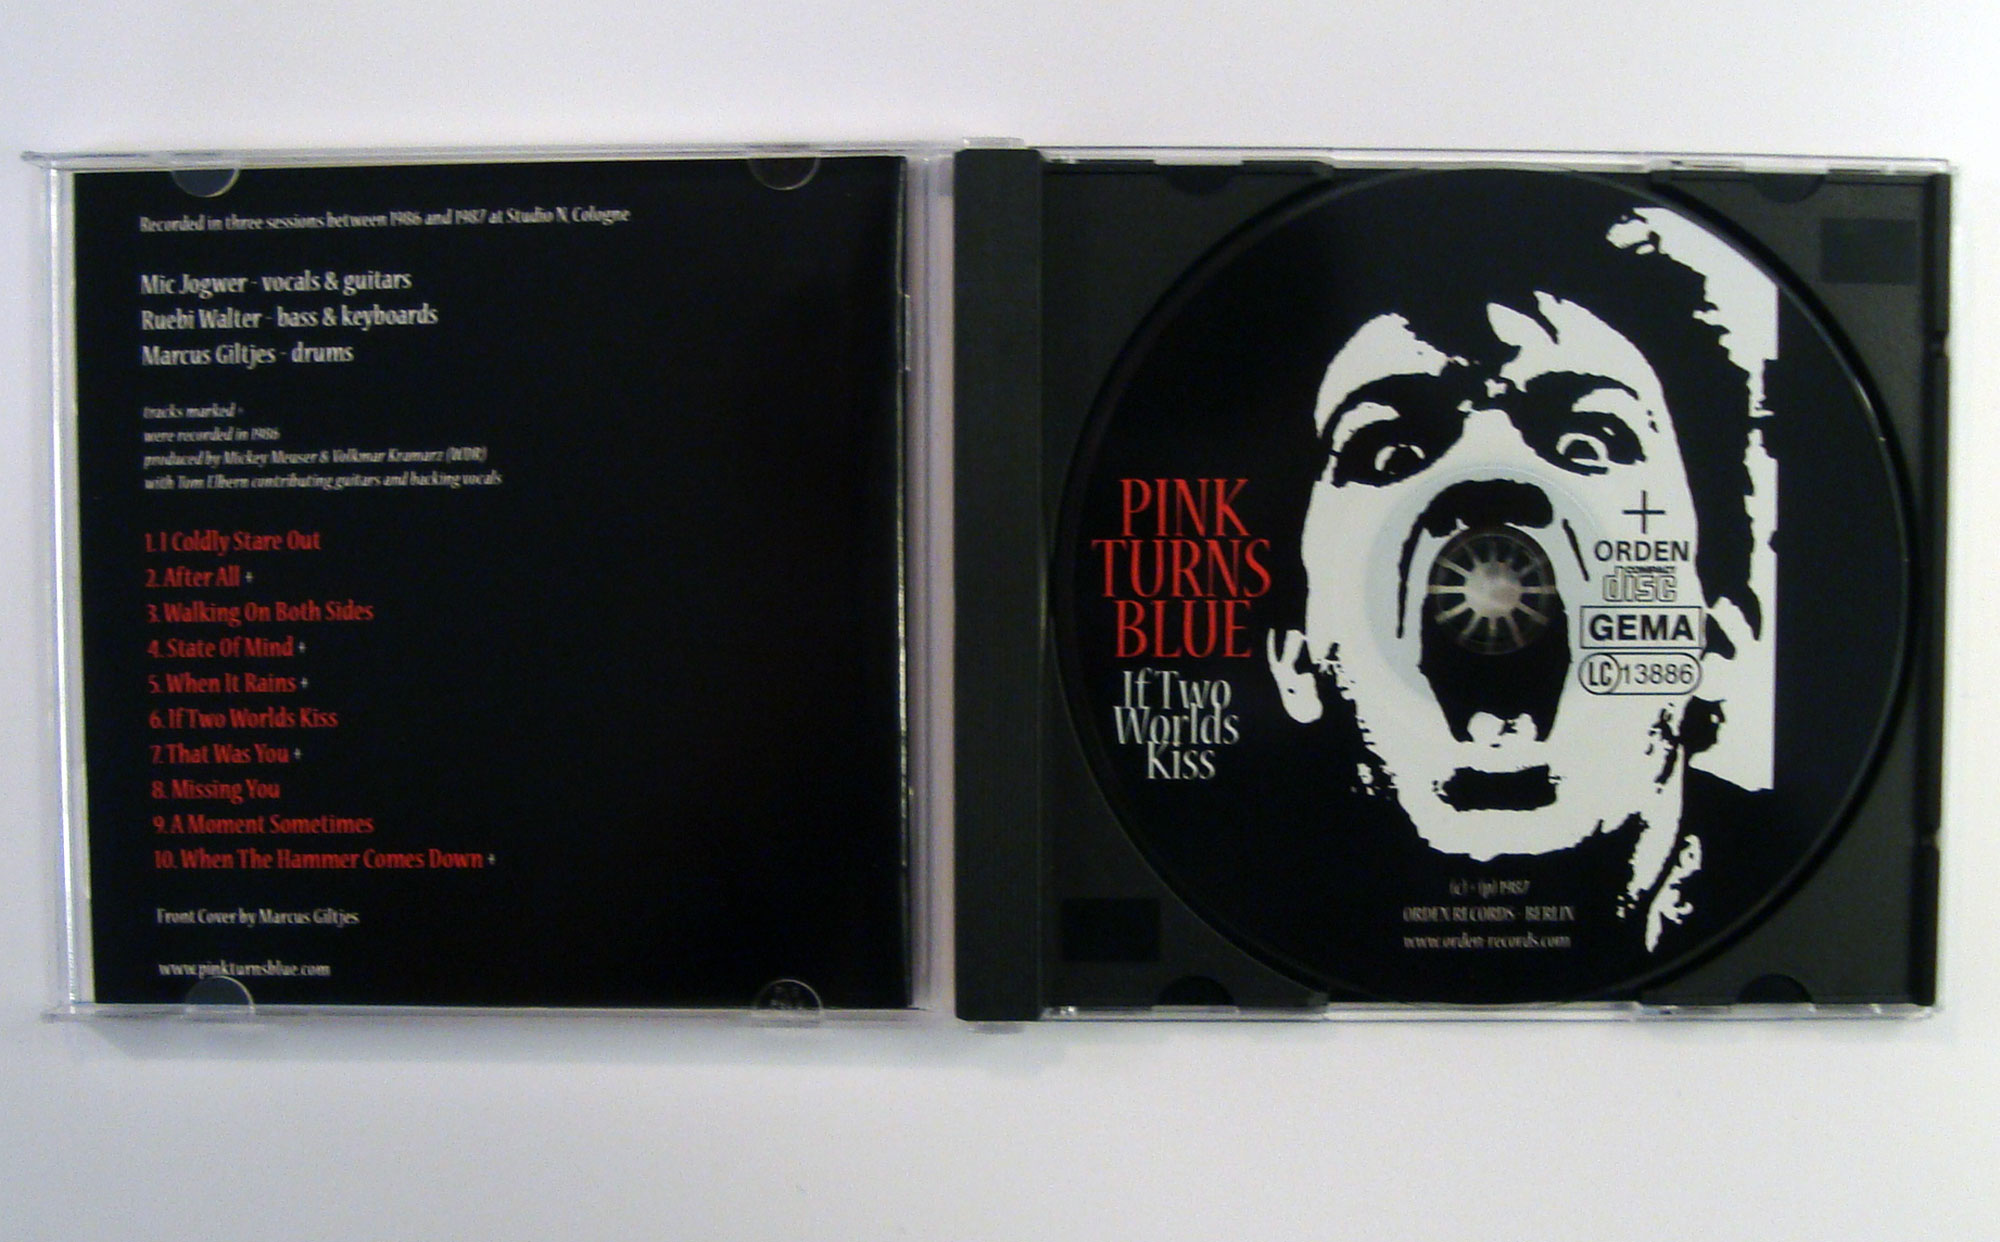 PINK TURNS BLUE - IF TWO WORLDS KISS - CD album - opened